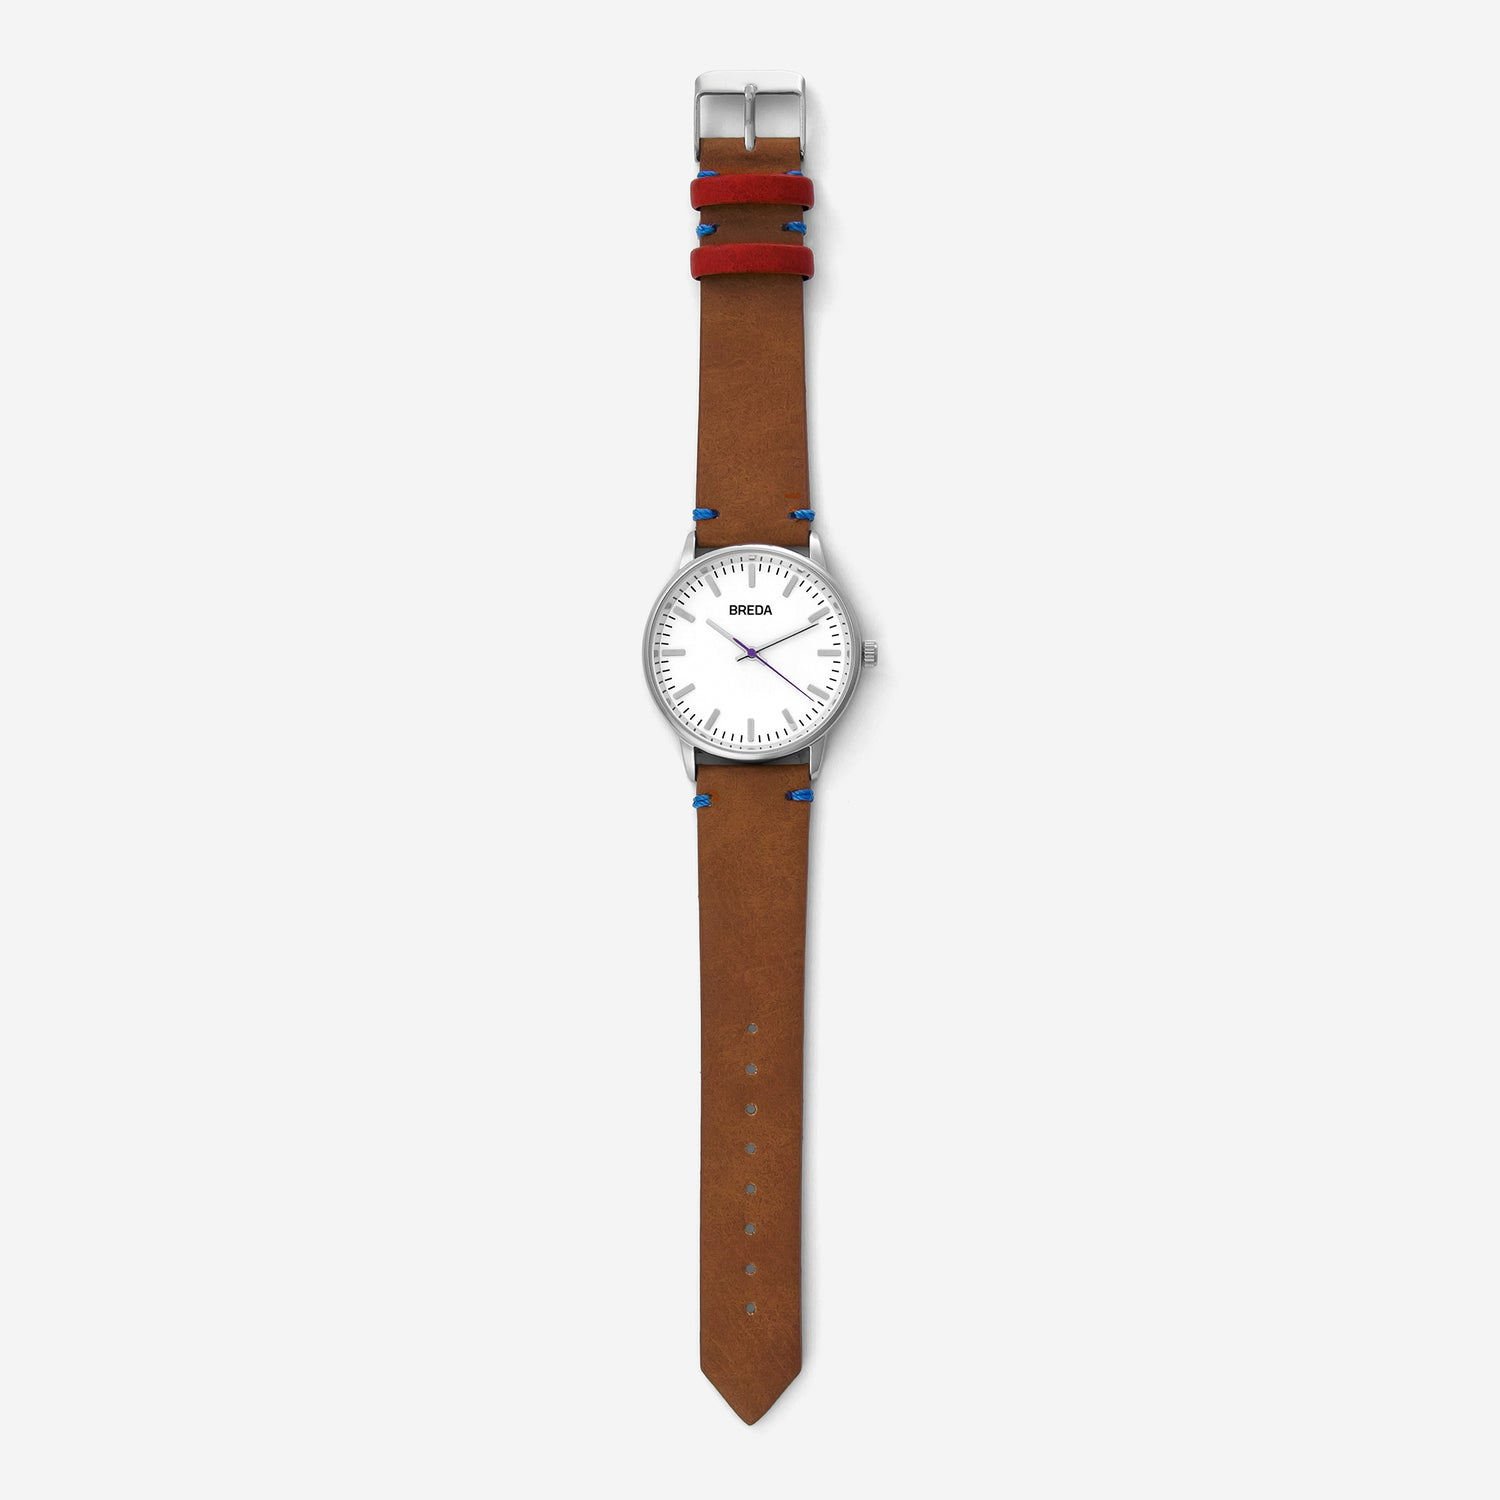 breda-zapf-1697c-silver-brown-watch-long